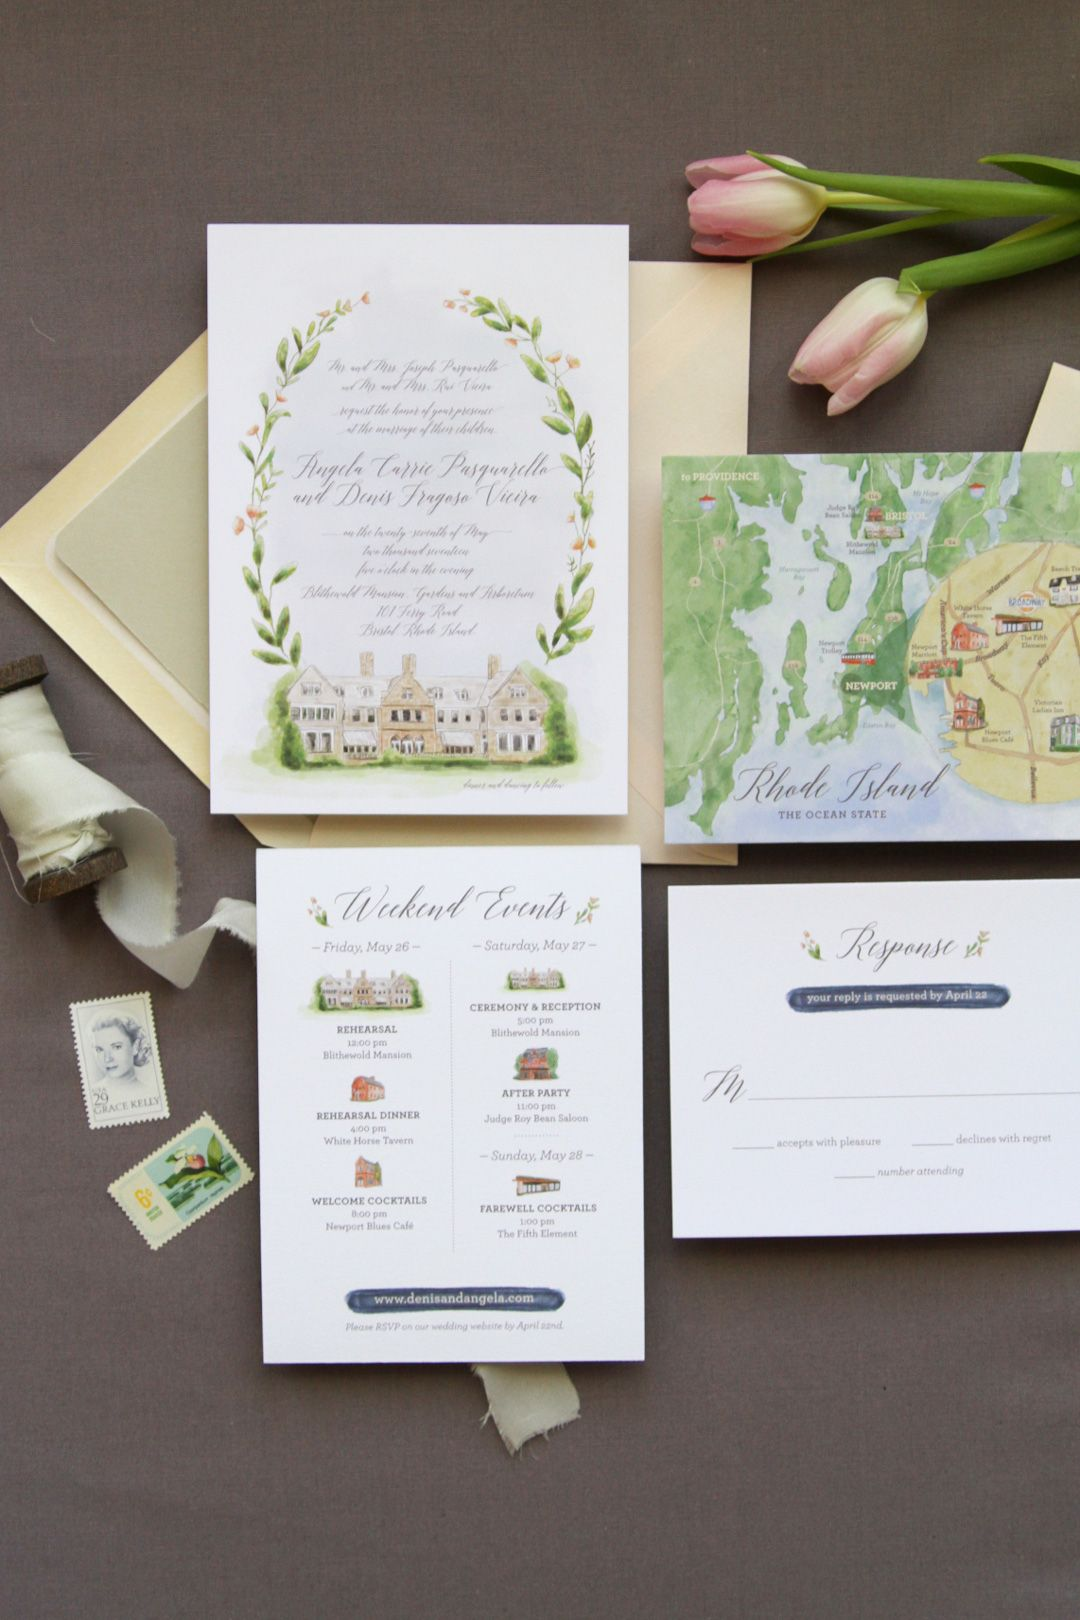 Hand Painted Watercolor Wedding Invitation Suite Featuring Blithe